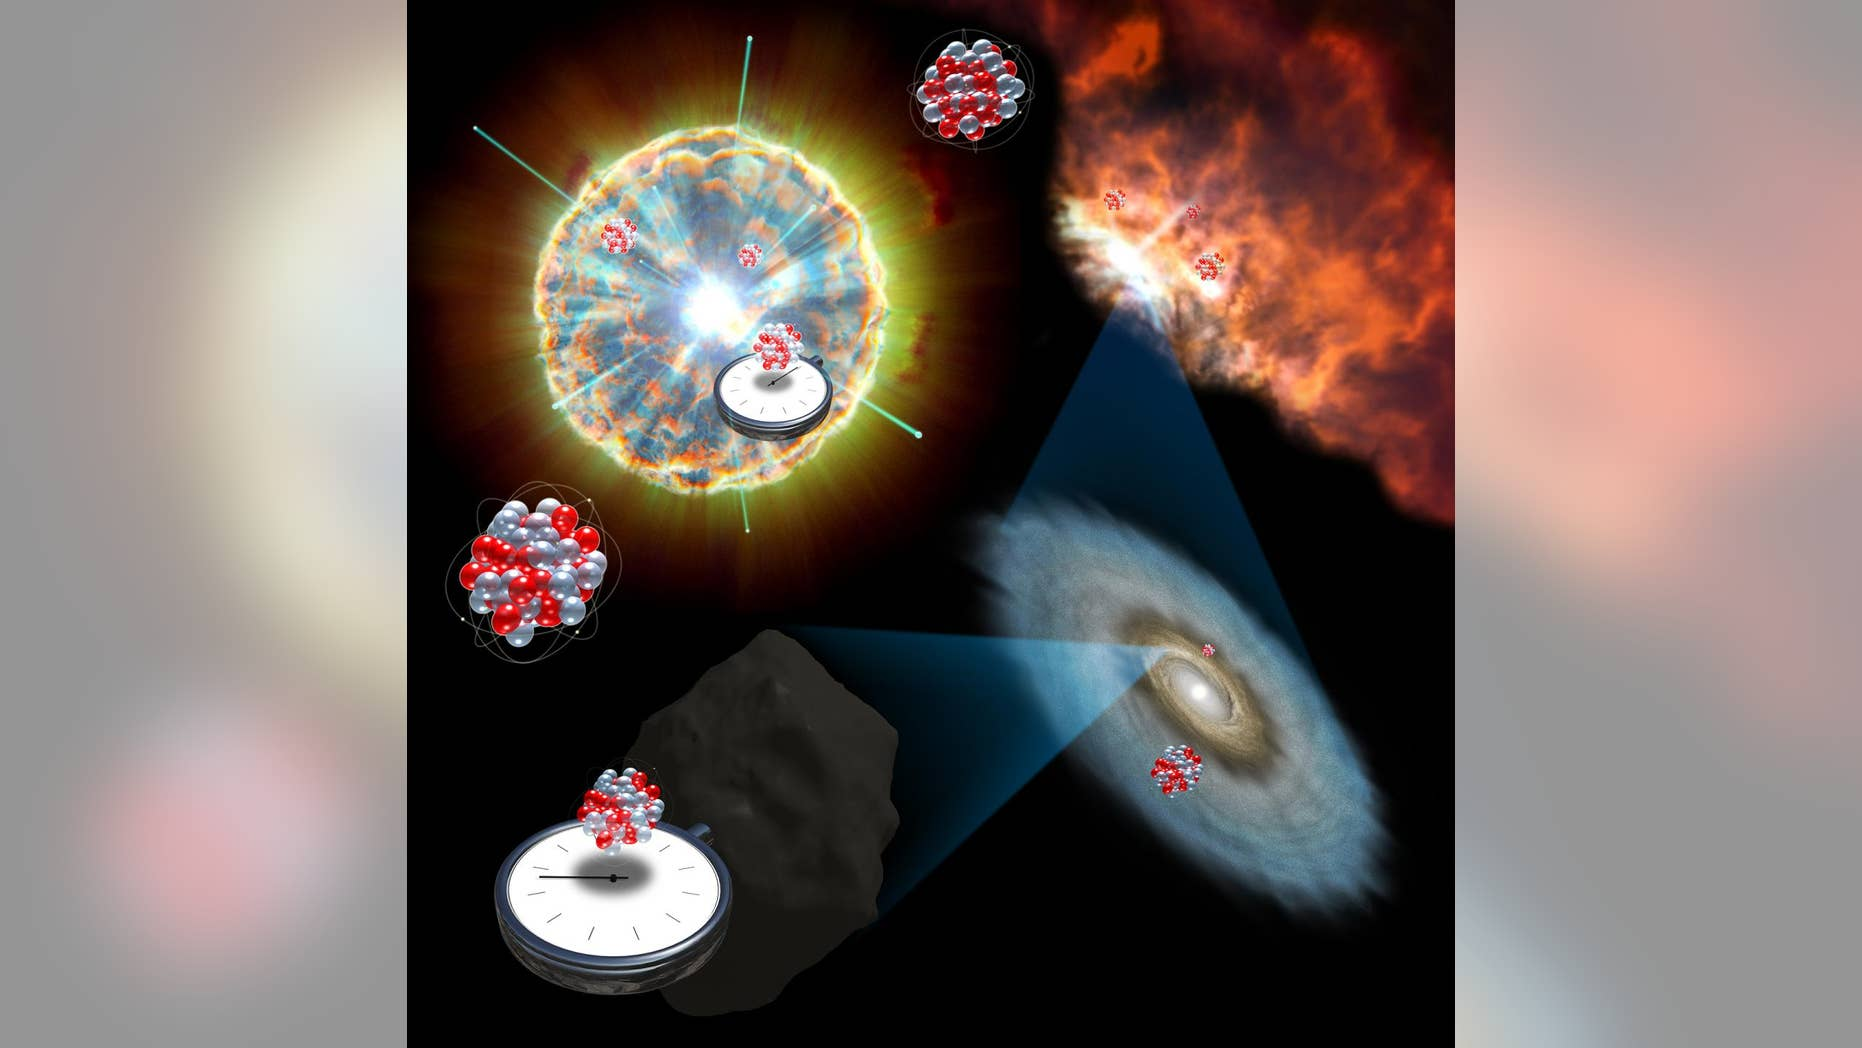 Trace elements found in meteorites shed light on the inner workings of supernova explosions, which release stellar material into space that is recycled to form new planets and stars.